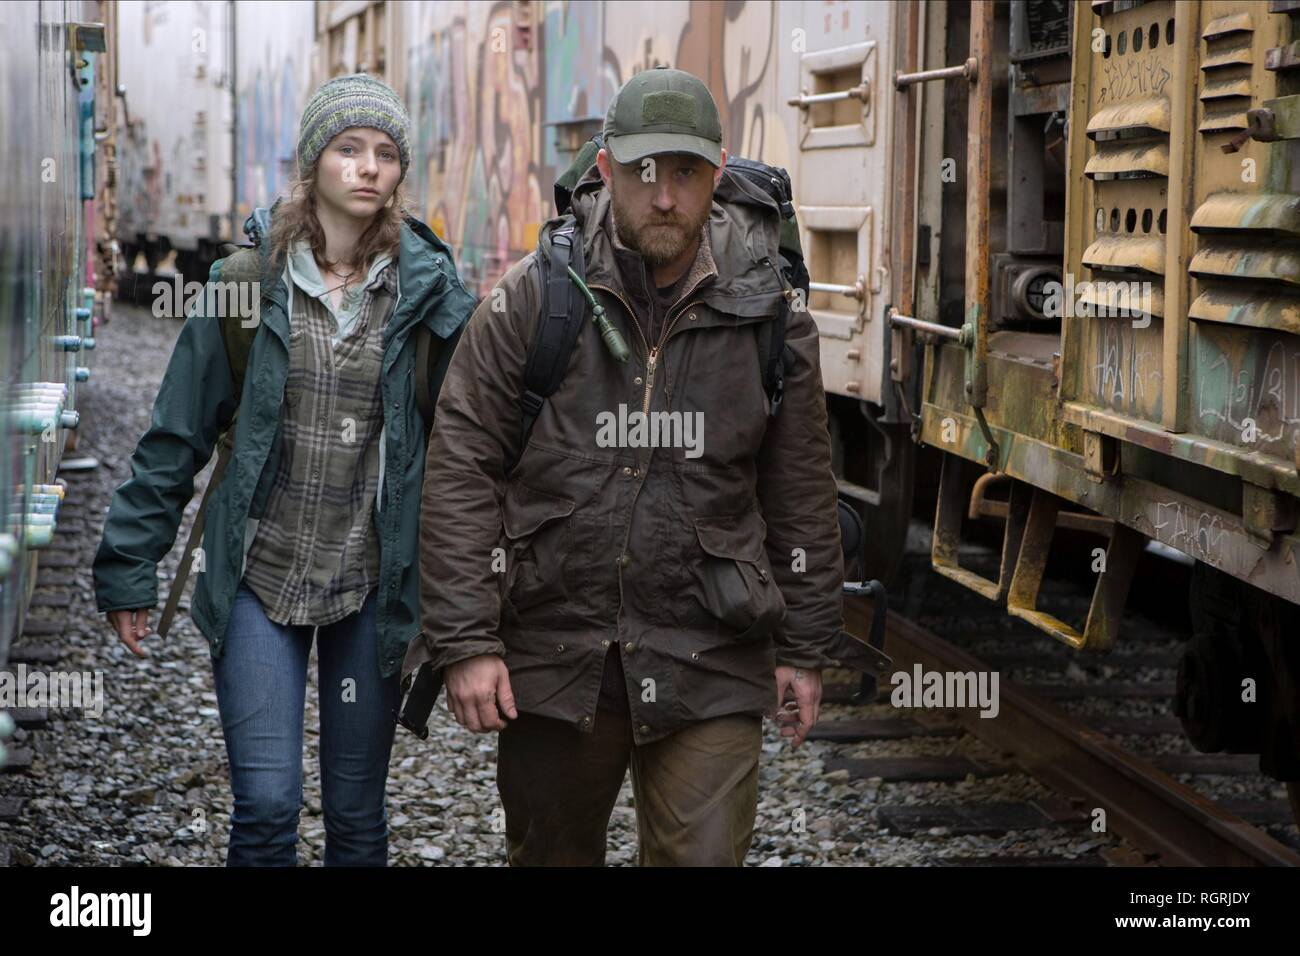 THOMASIN MCKENZIE & BEN FOSTER Leave No Trace (2018) Photo Stock